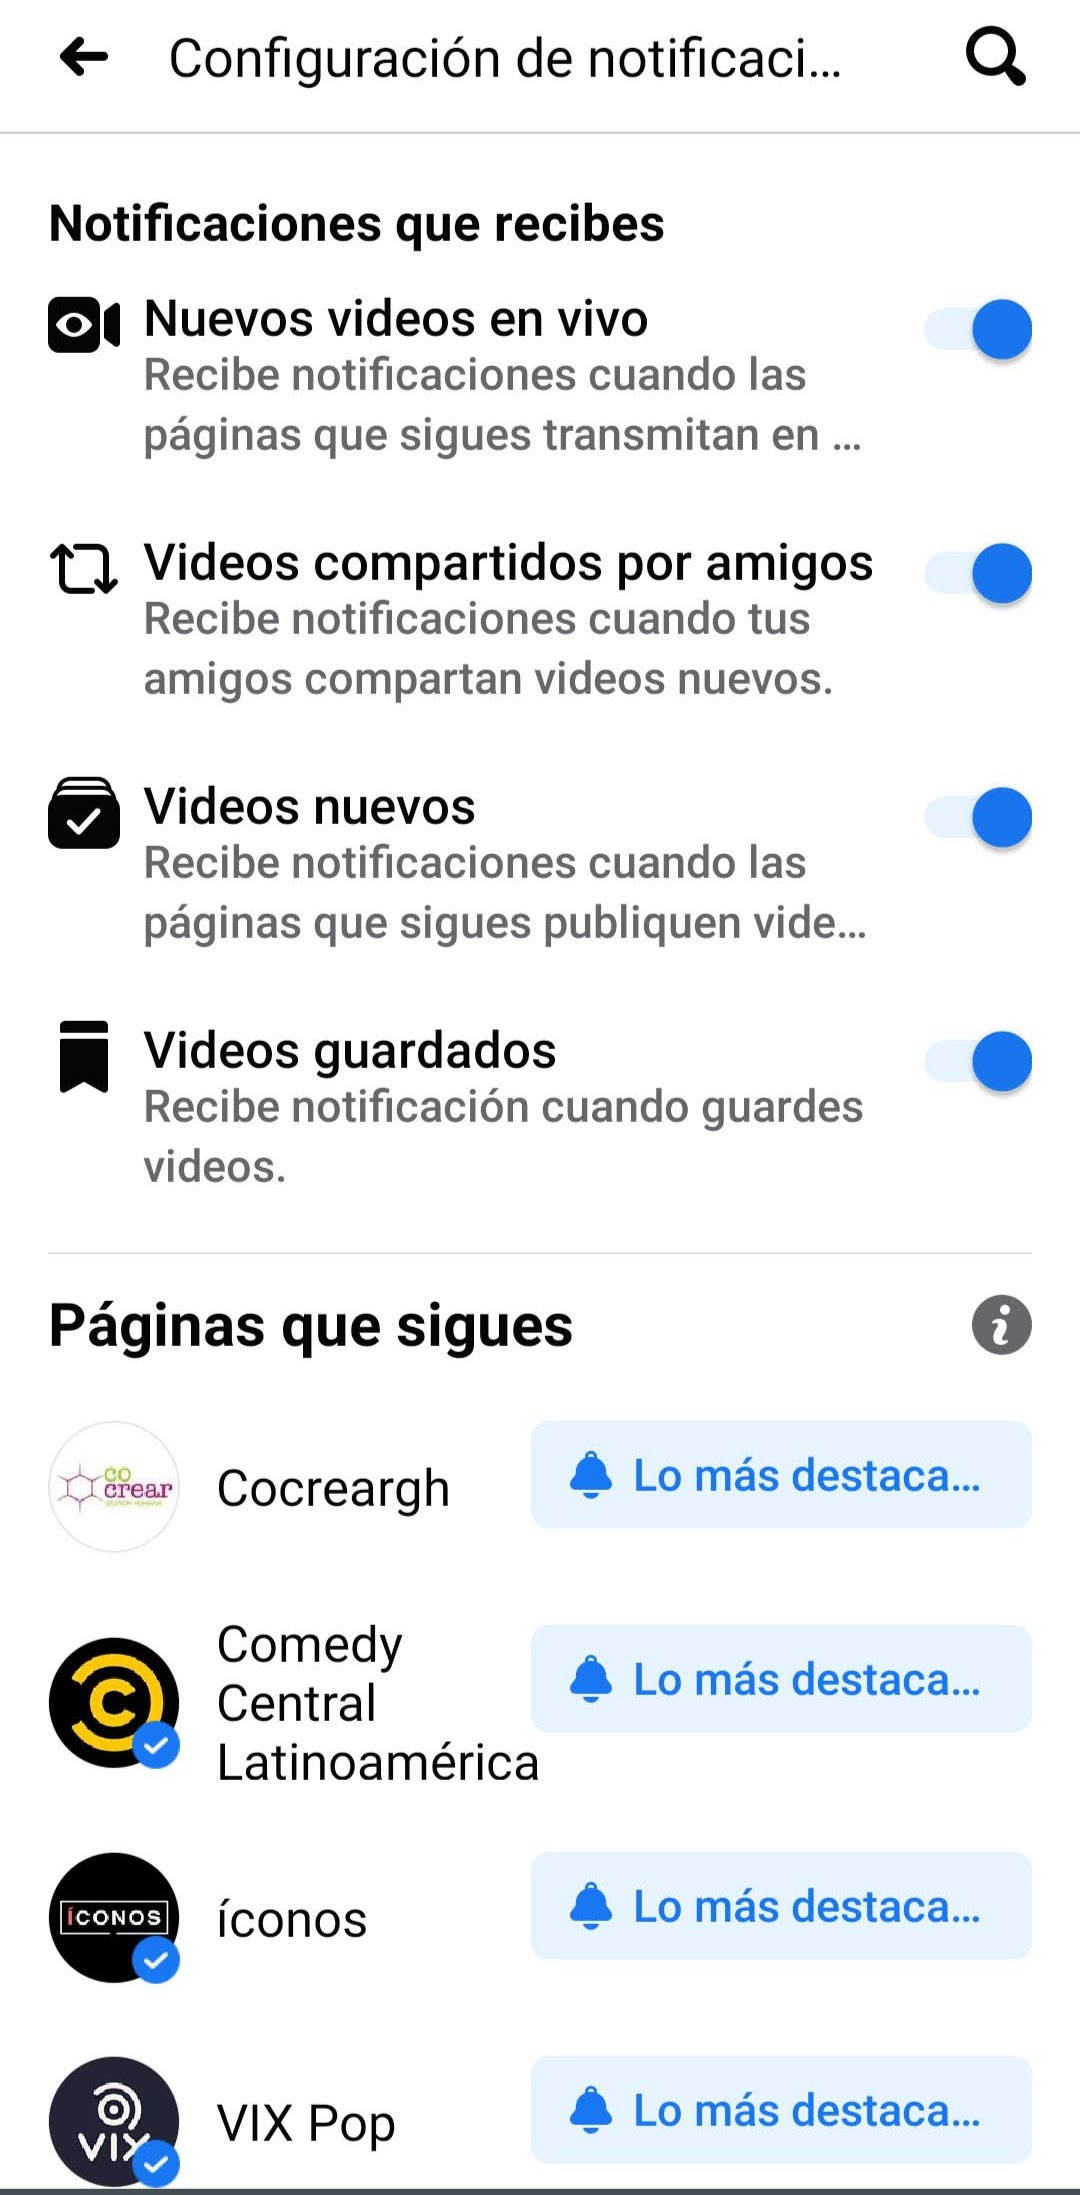 Configuración notificaciones Facebook TV